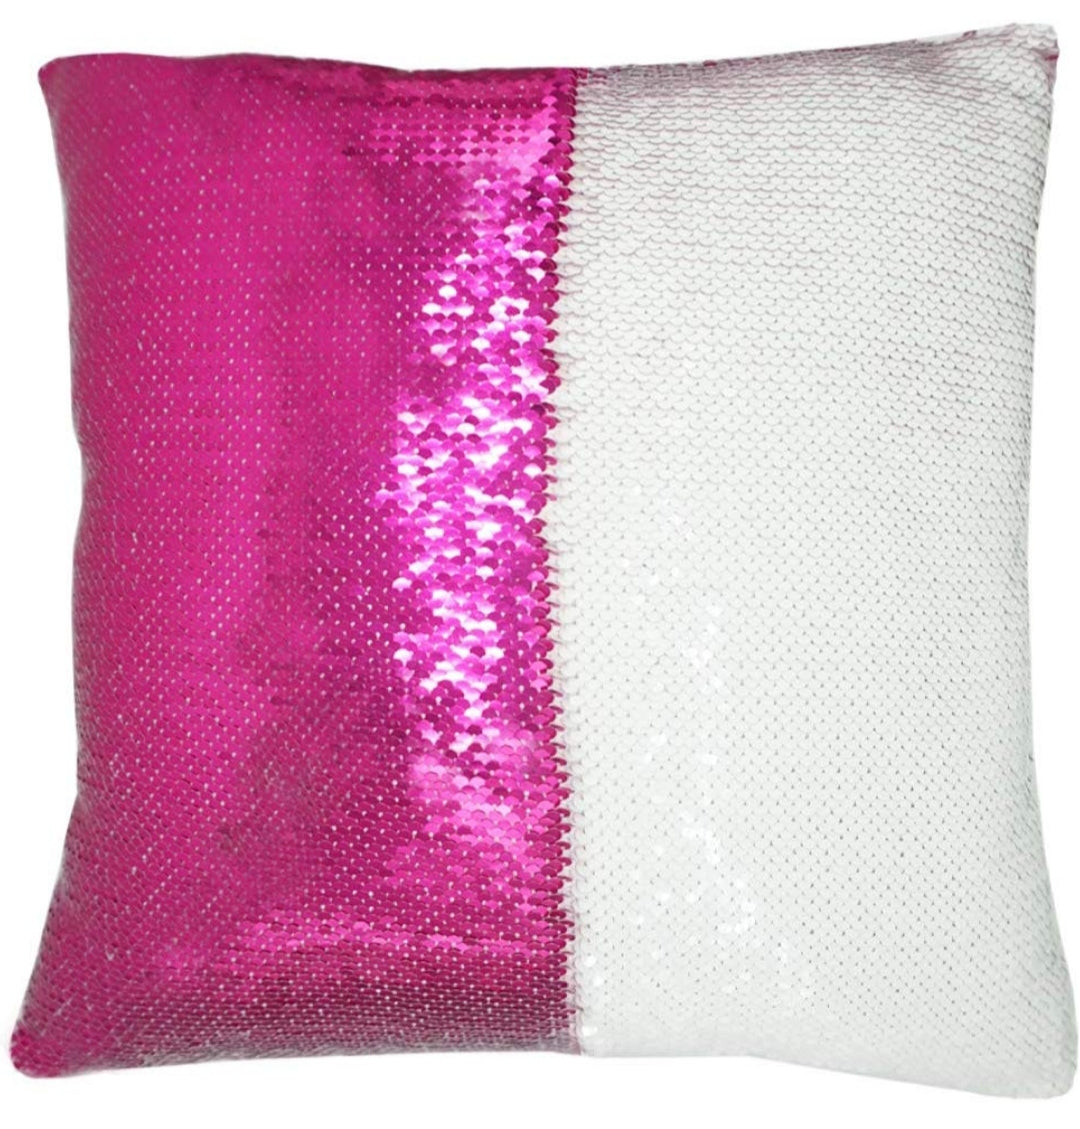 Personalize 15x15 Sequin Pillow